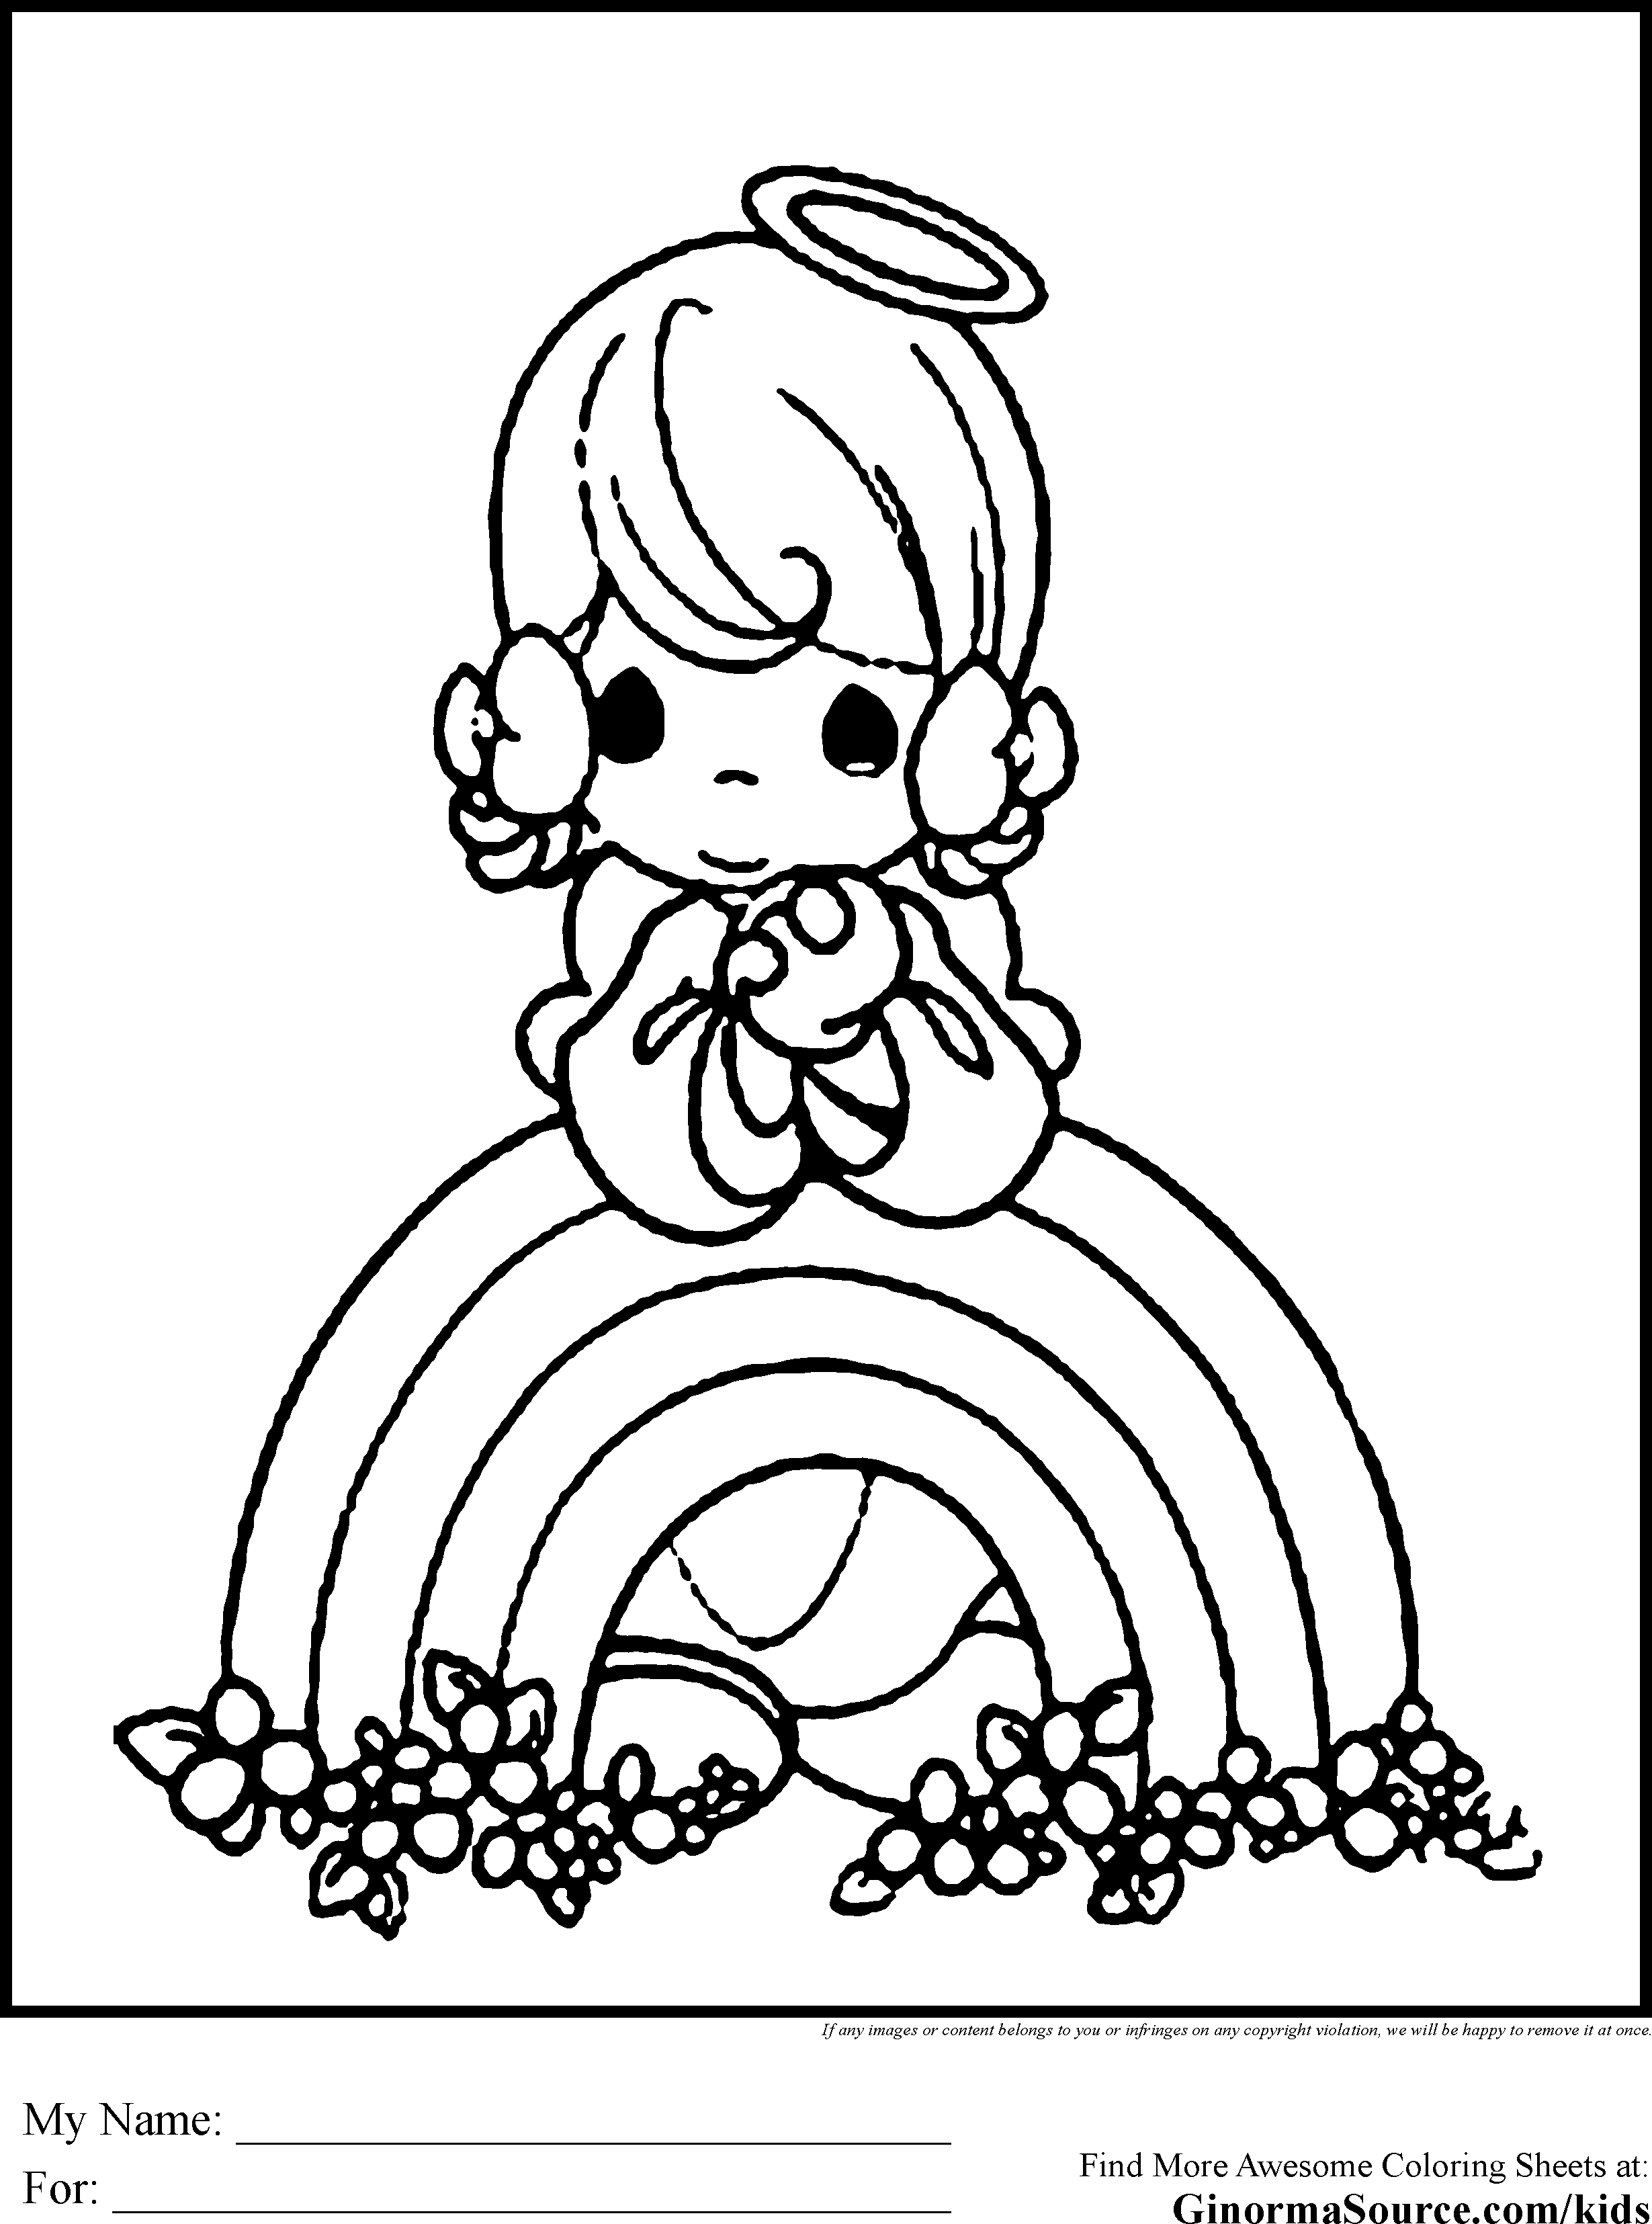 Christmas Coloring Pages That You Can Print With Unlimited Pictures And Color